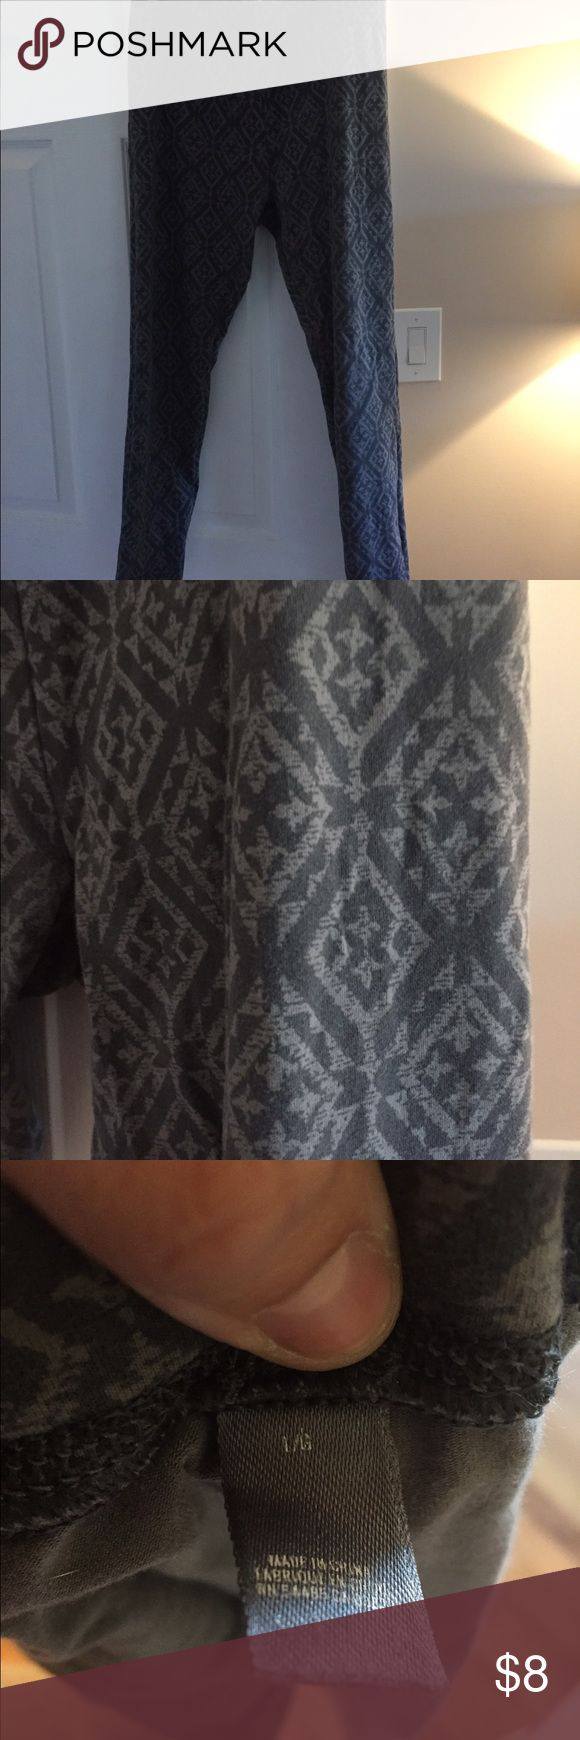 Large tribal print leggings Aerie by American eagle large gray tribal leggings. Only worn a few times in great condition.   I do not model  Bundle to save aerie Pants Leggings